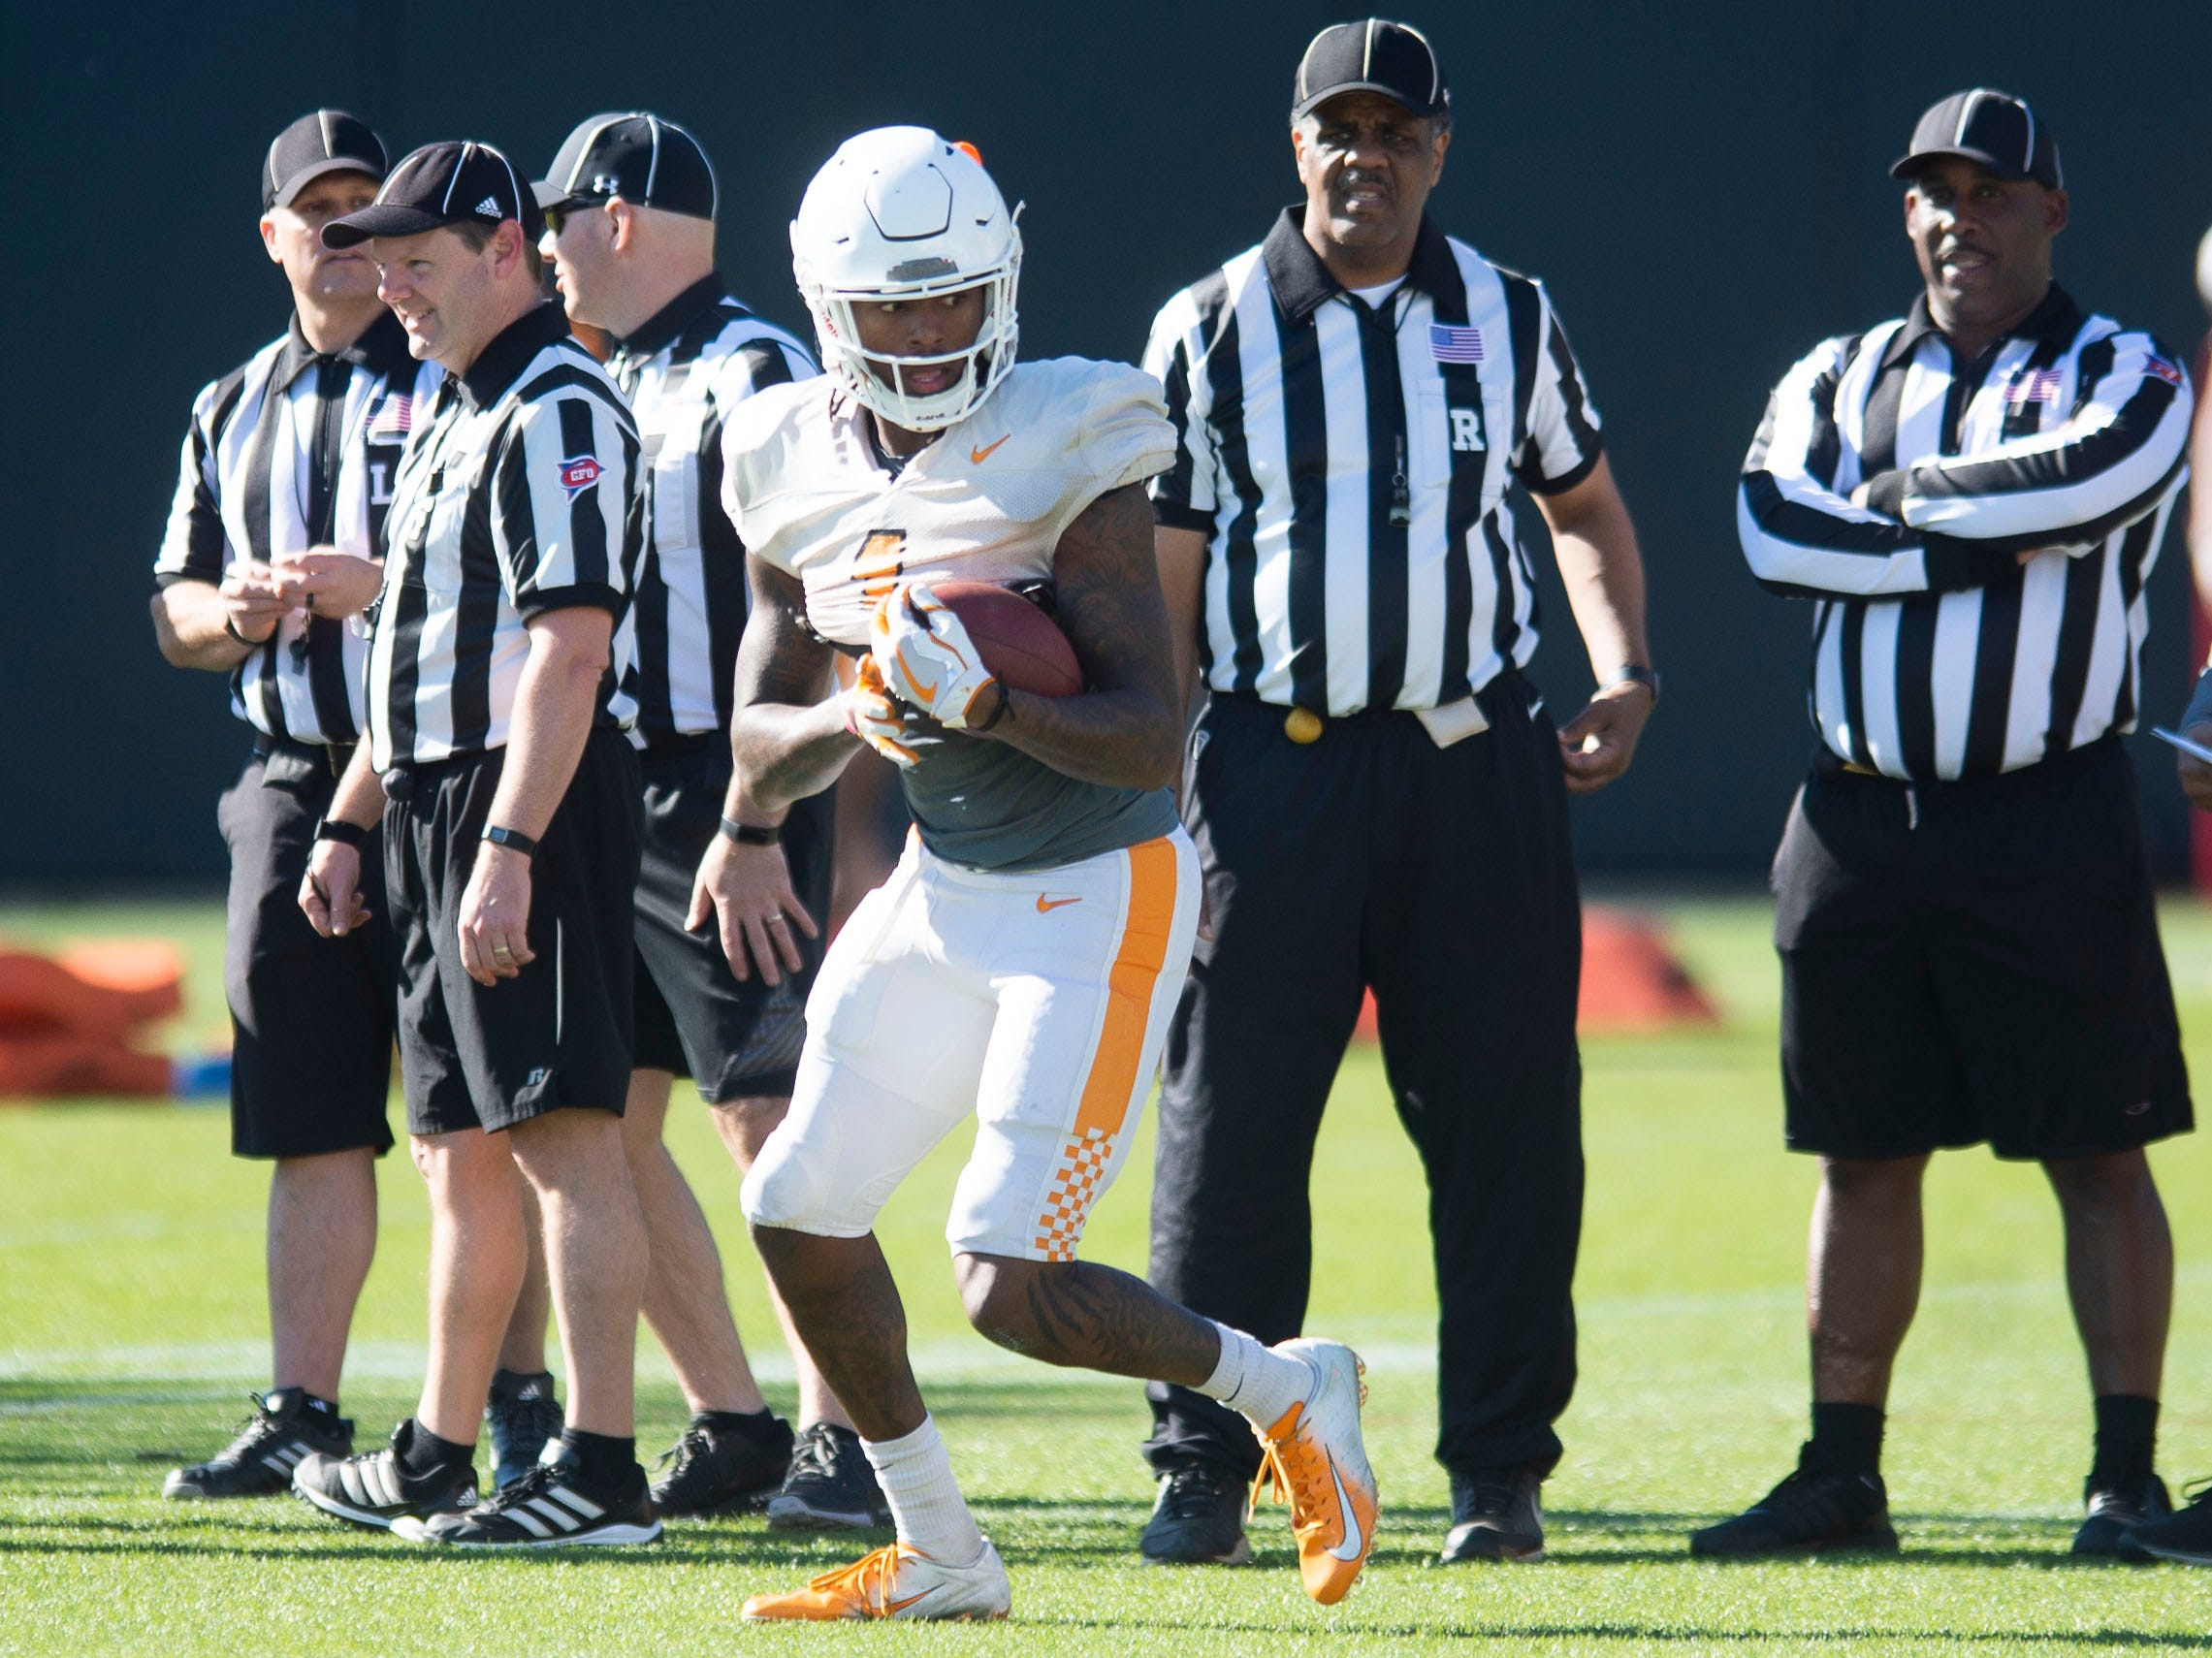 Tennessee wide receiver Marquez Callaway (1) at football practice on Friday, March 15, 2019.